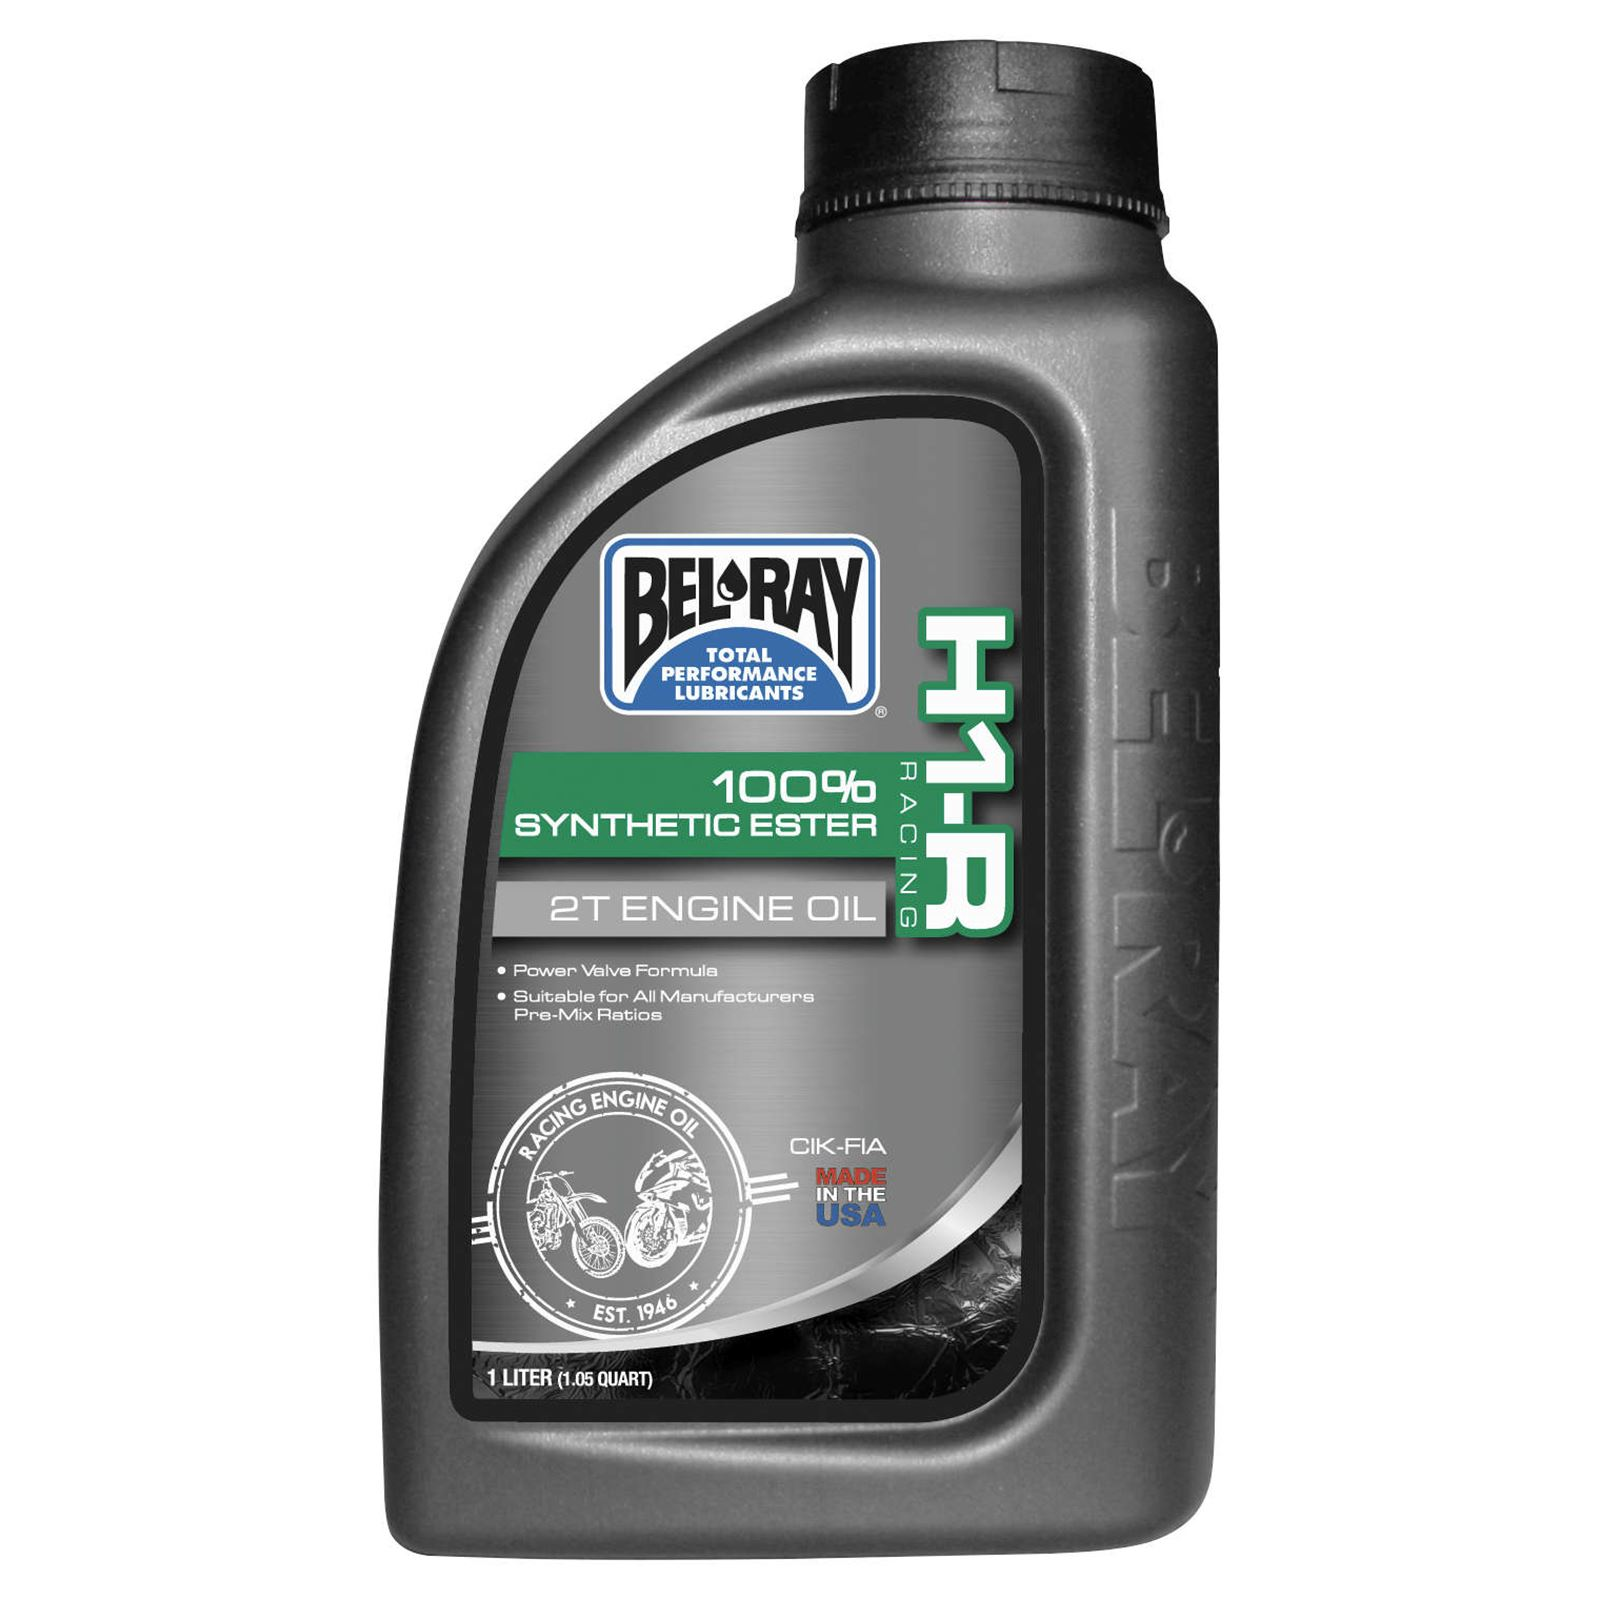 Bel-Ray H1-R Racing 100% Synthetic Ester 2T Engine Oil